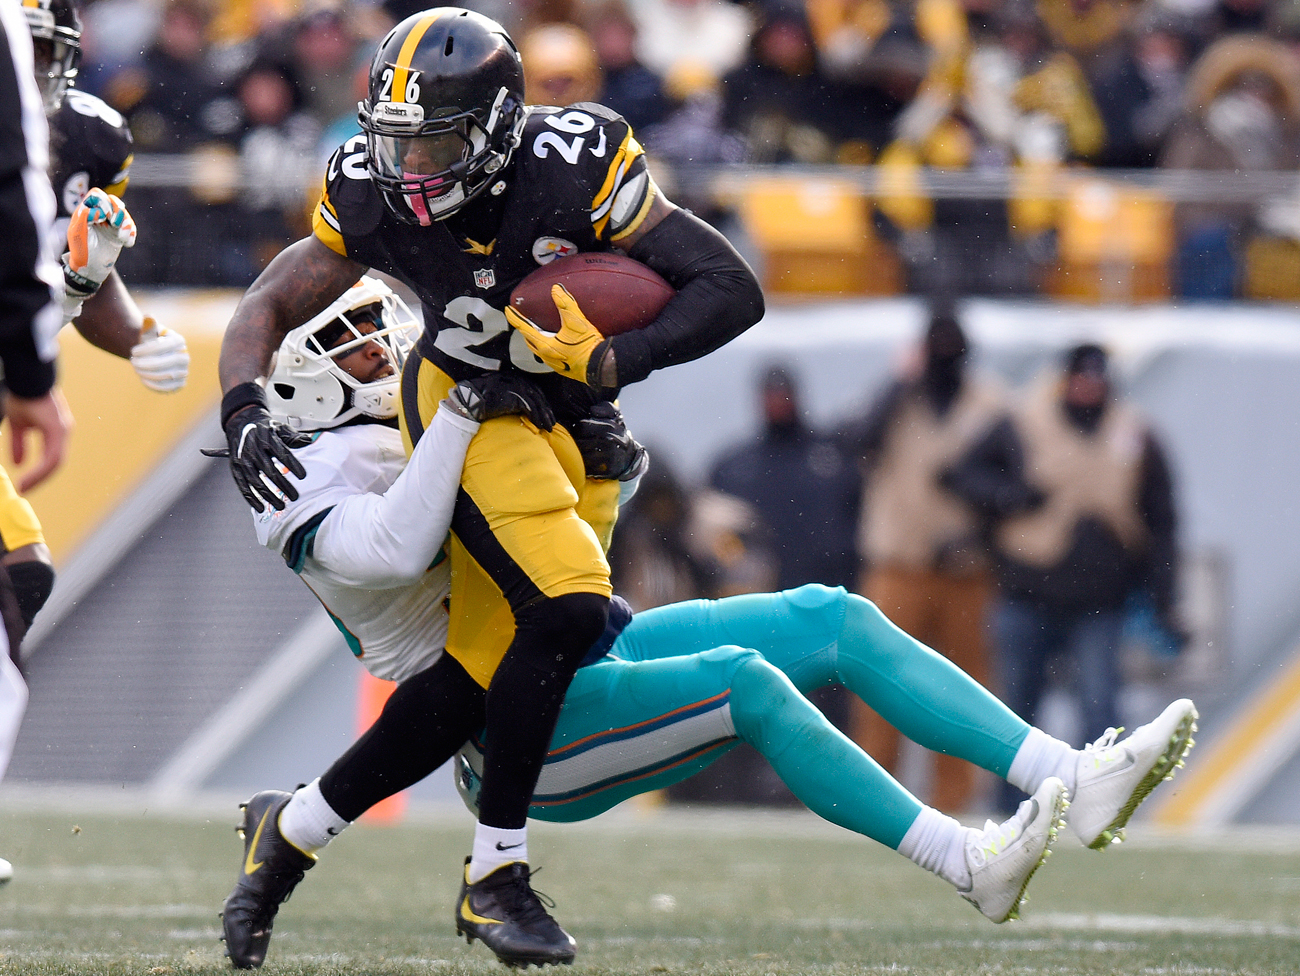 packers steelers off to scary start in nfl playoffs the mmqb le veon bell s 167 rushing yards against the dolphins set a new steelers franchise record for the postseason